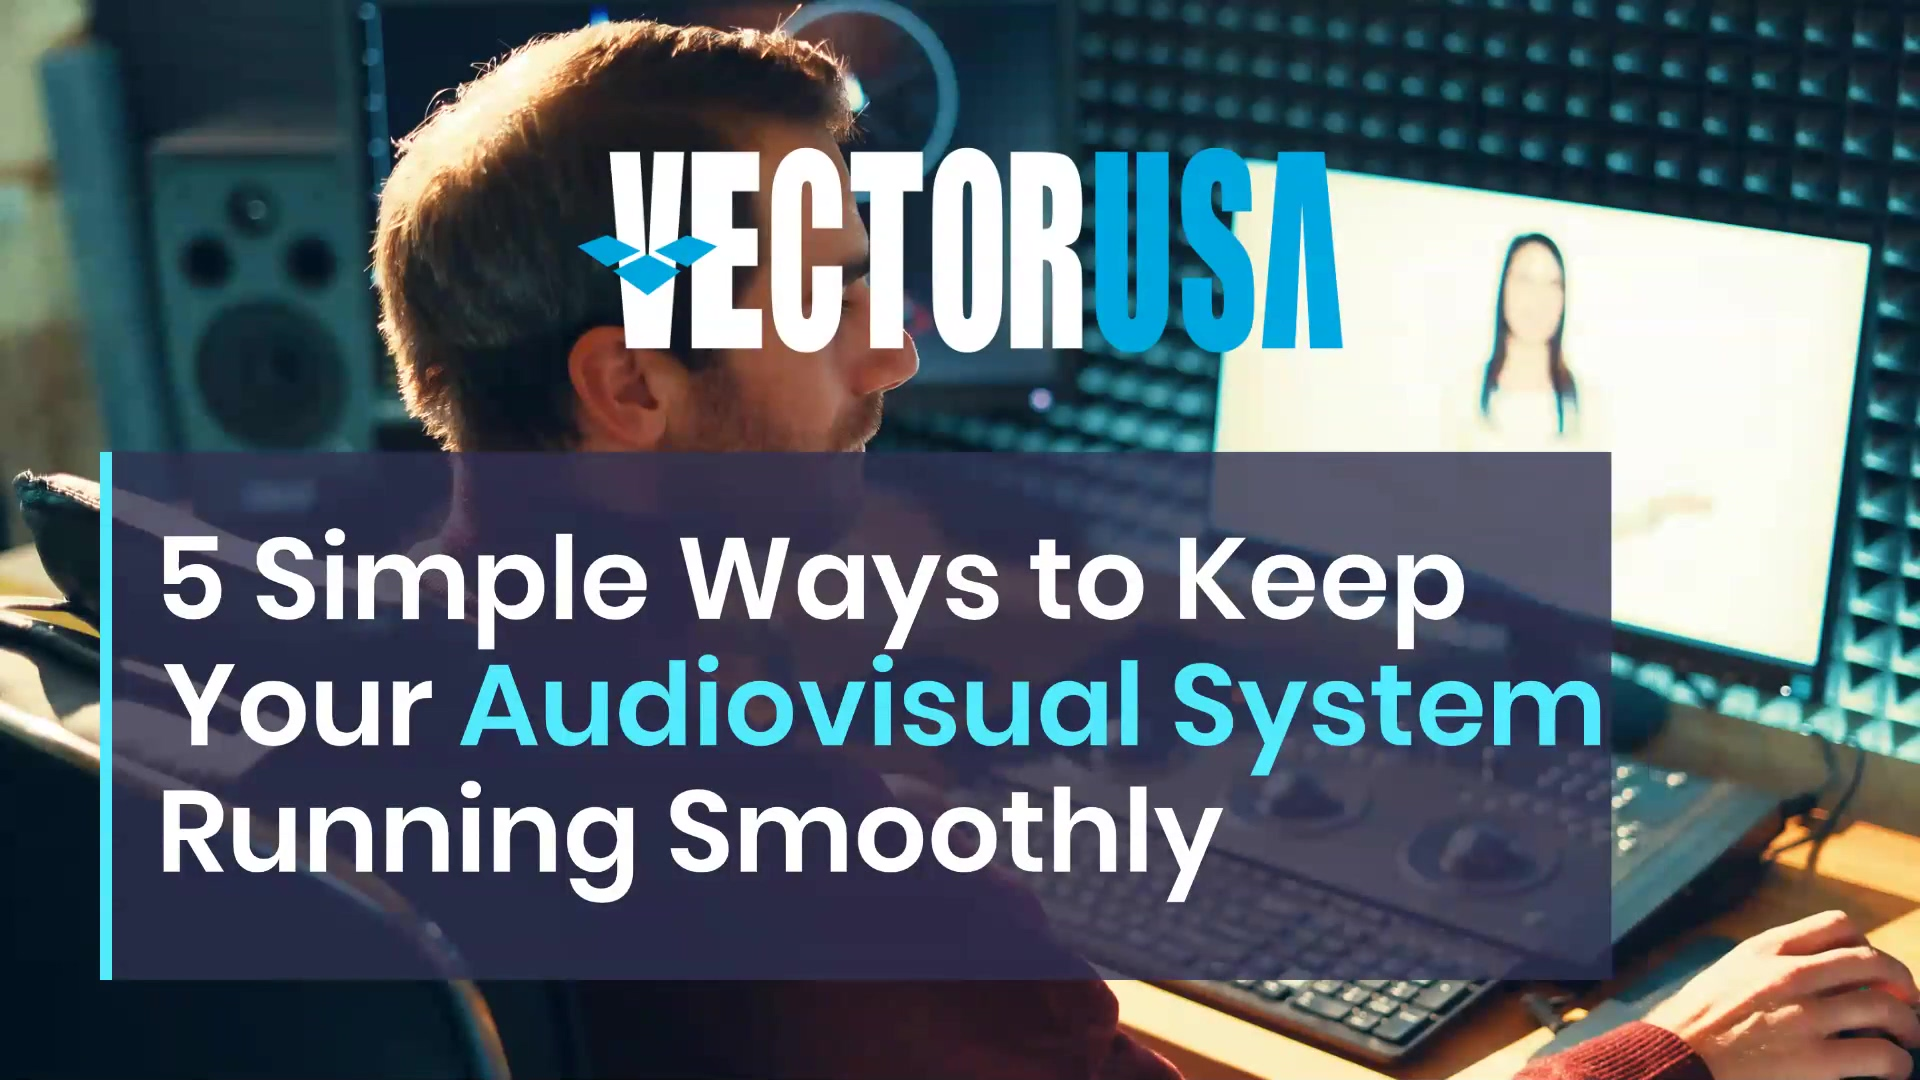 5 Simple Ways to Keep Your Audiovisual System Running Smoothly - Lumen